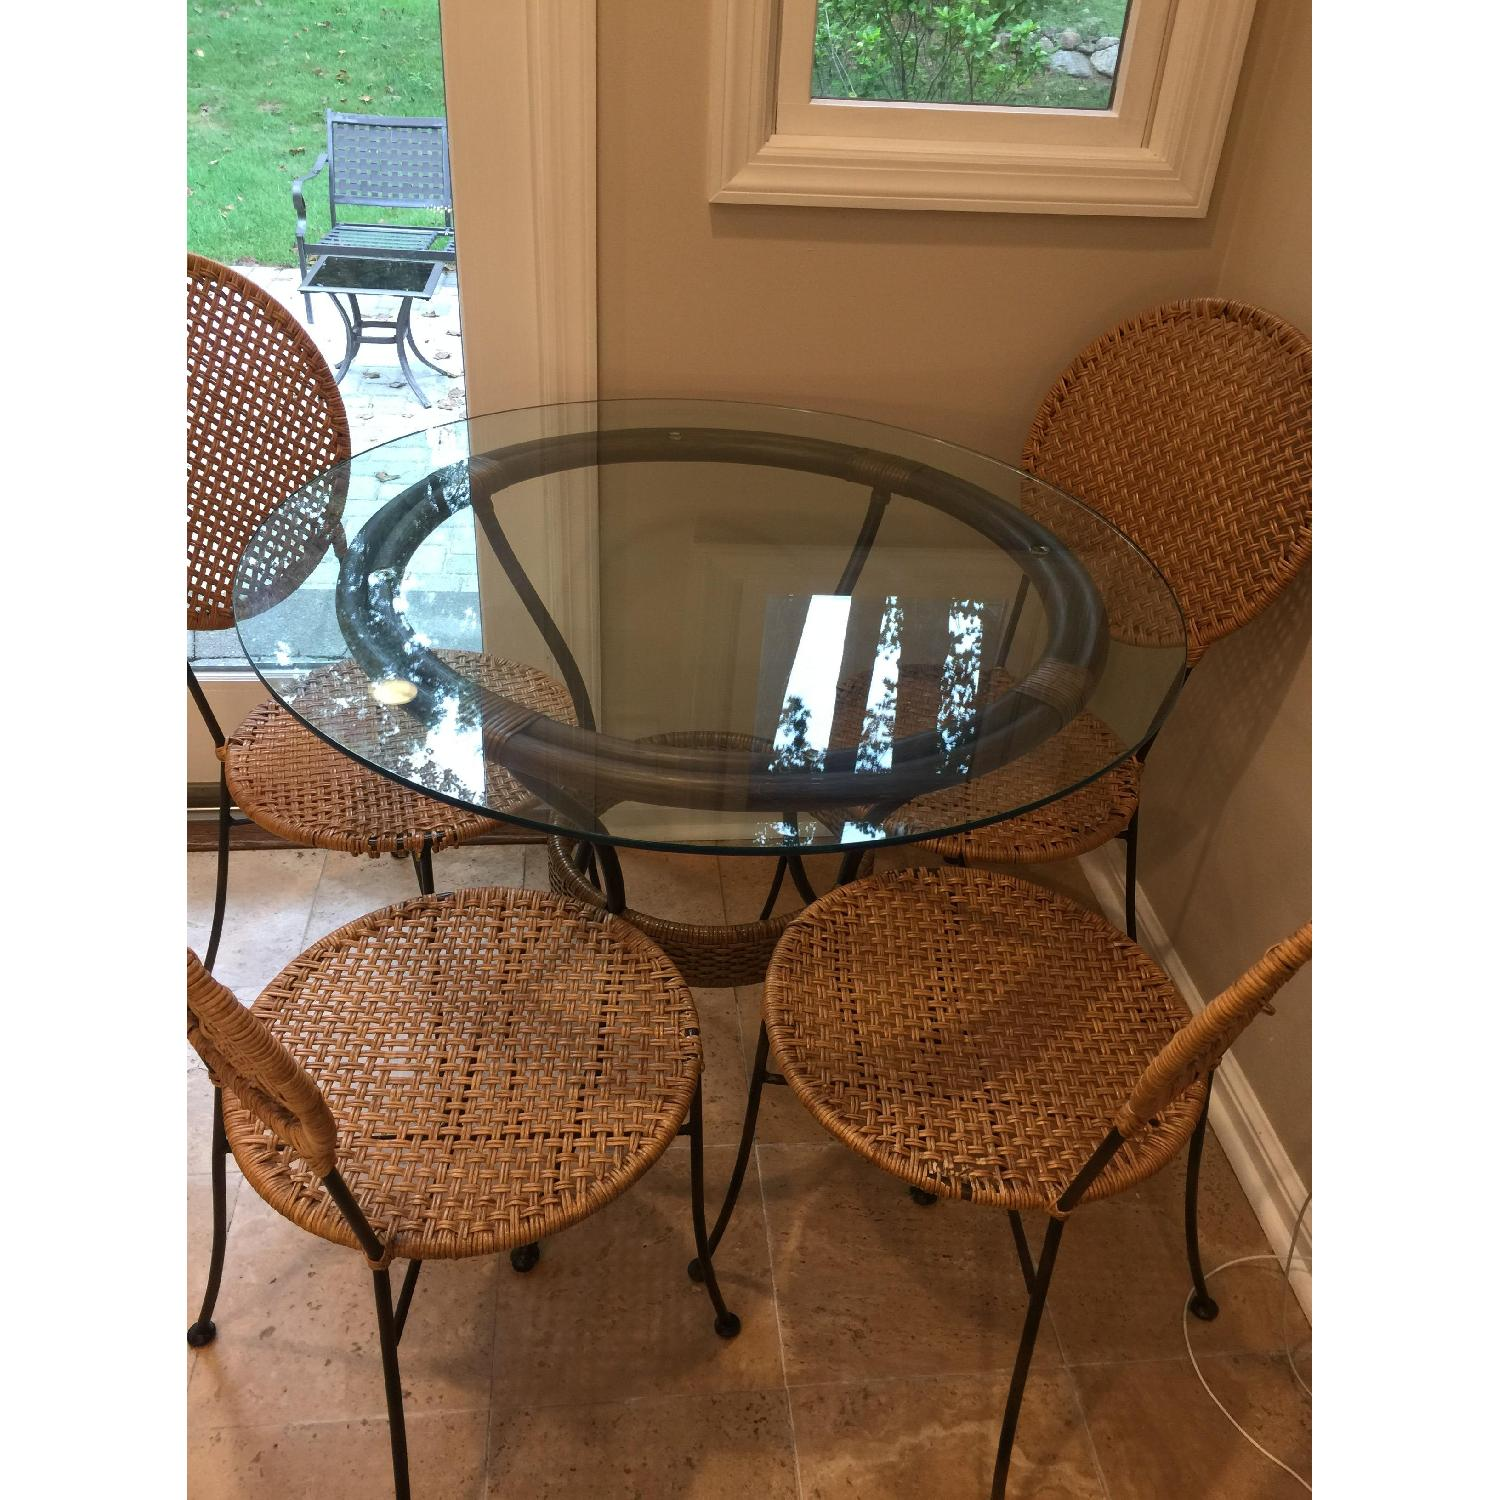 Pier 1 Round Glass Dining Table w/ 4 Chairs - image-2